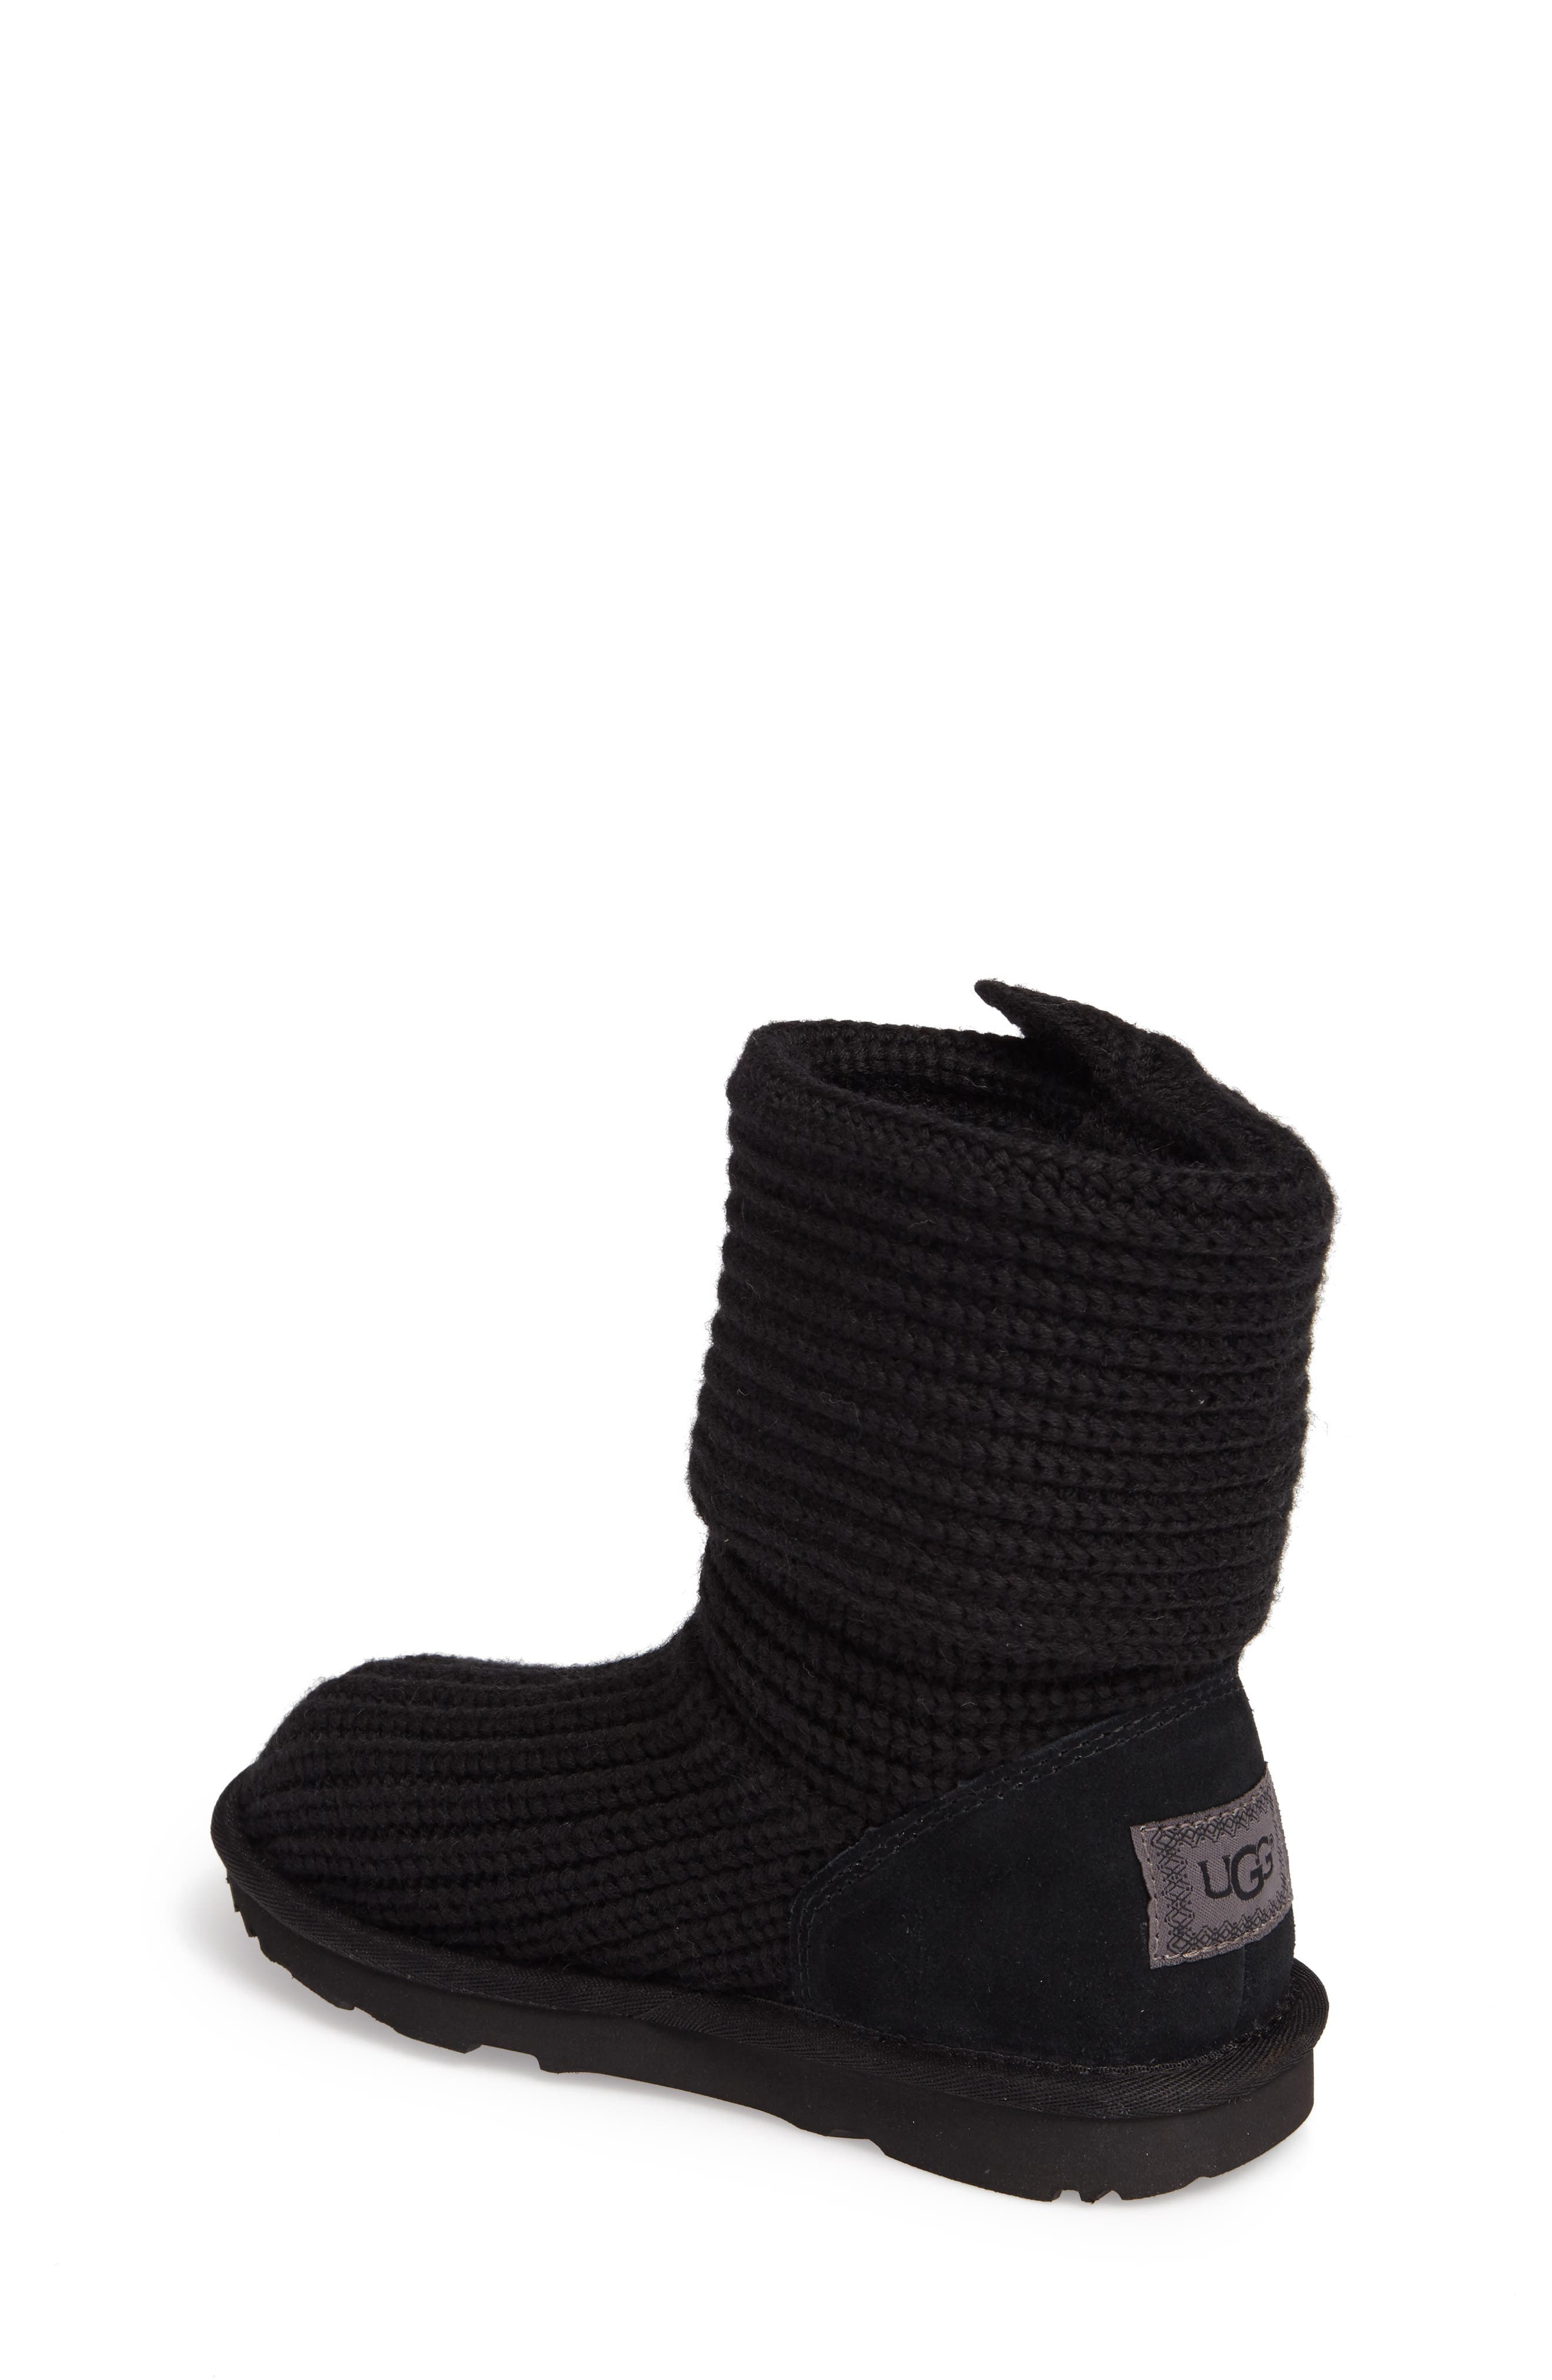 Cardy II Cableknit Boot,                             Alternate thumbnail 2, color,                             BLACK